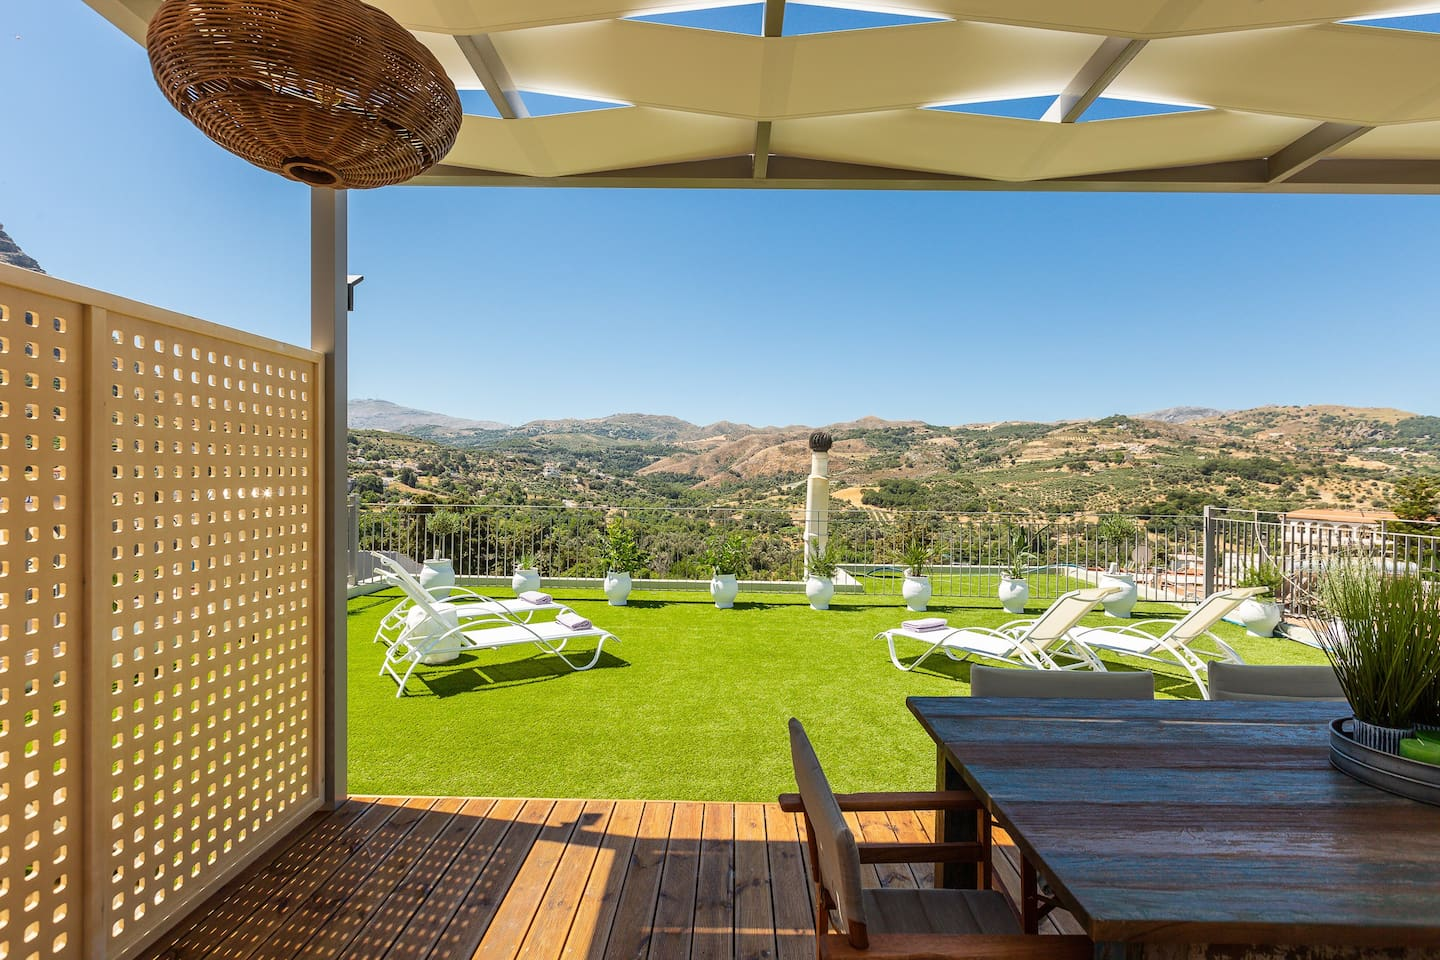 Lovely roof terrace with patio furniture, sunbeds and amazing views to the mountains.